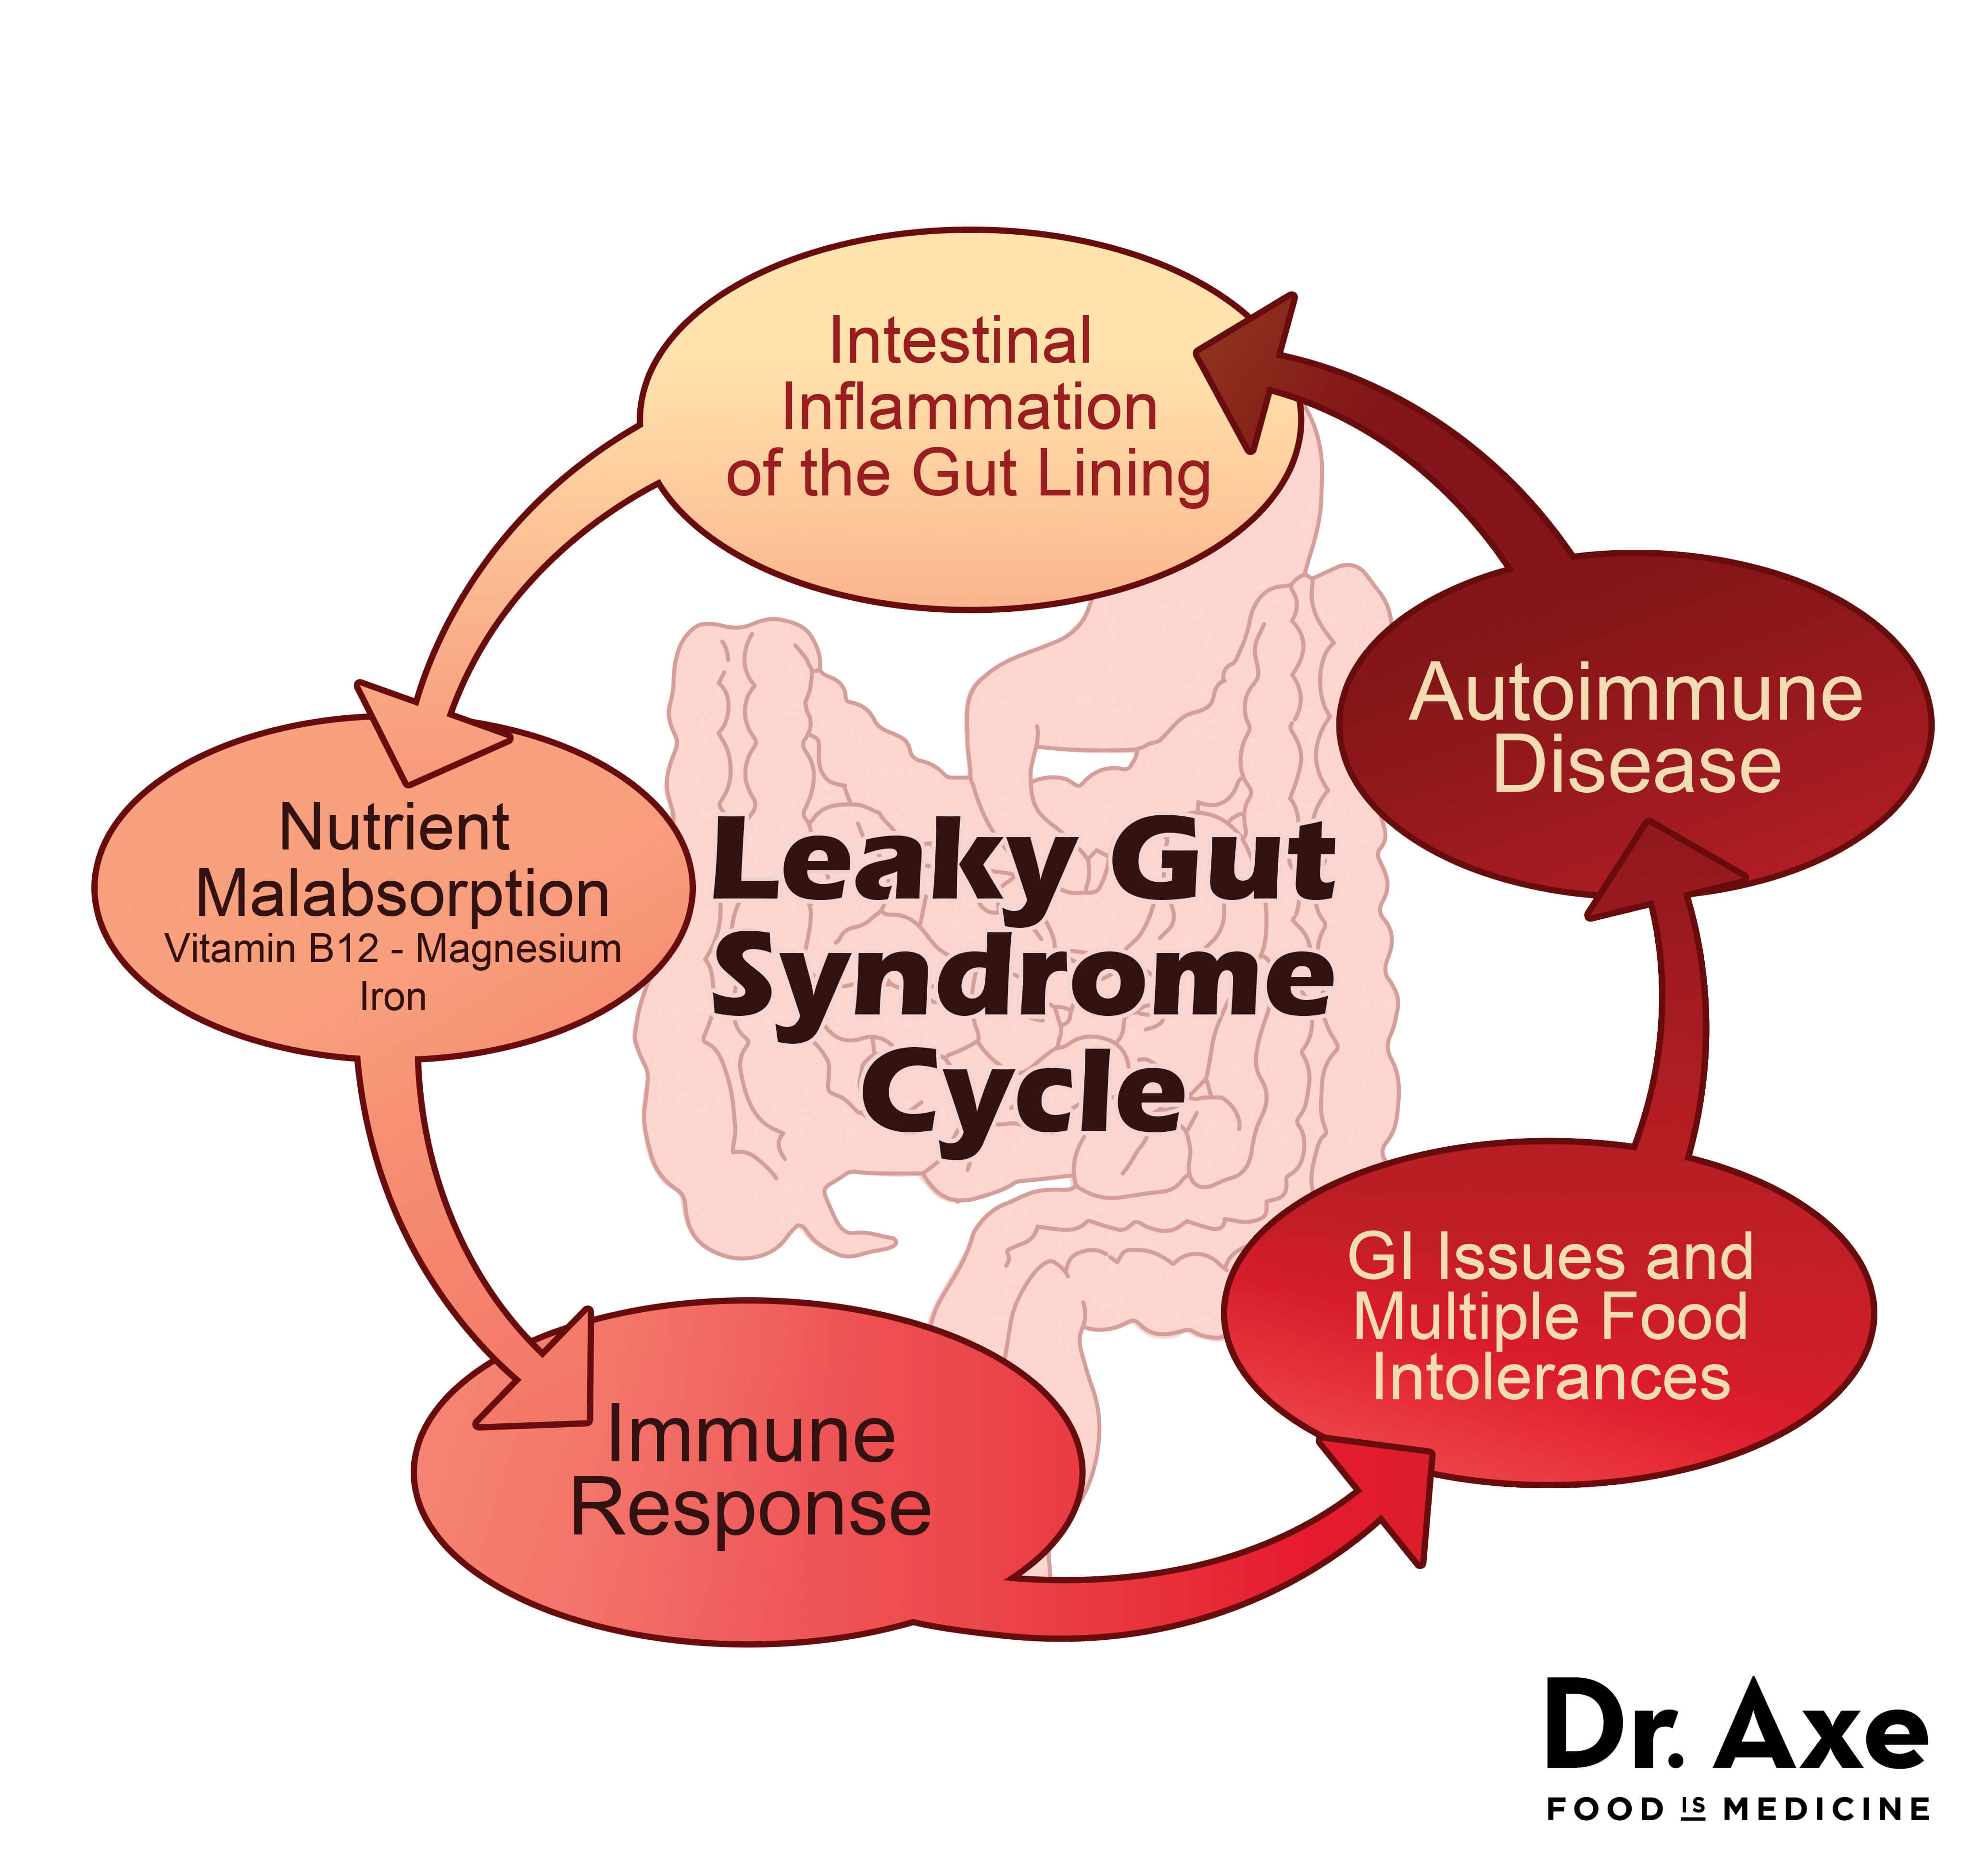 Heal Leaky Gut Syndrome & Autoimmune Disease - Dr. Axe